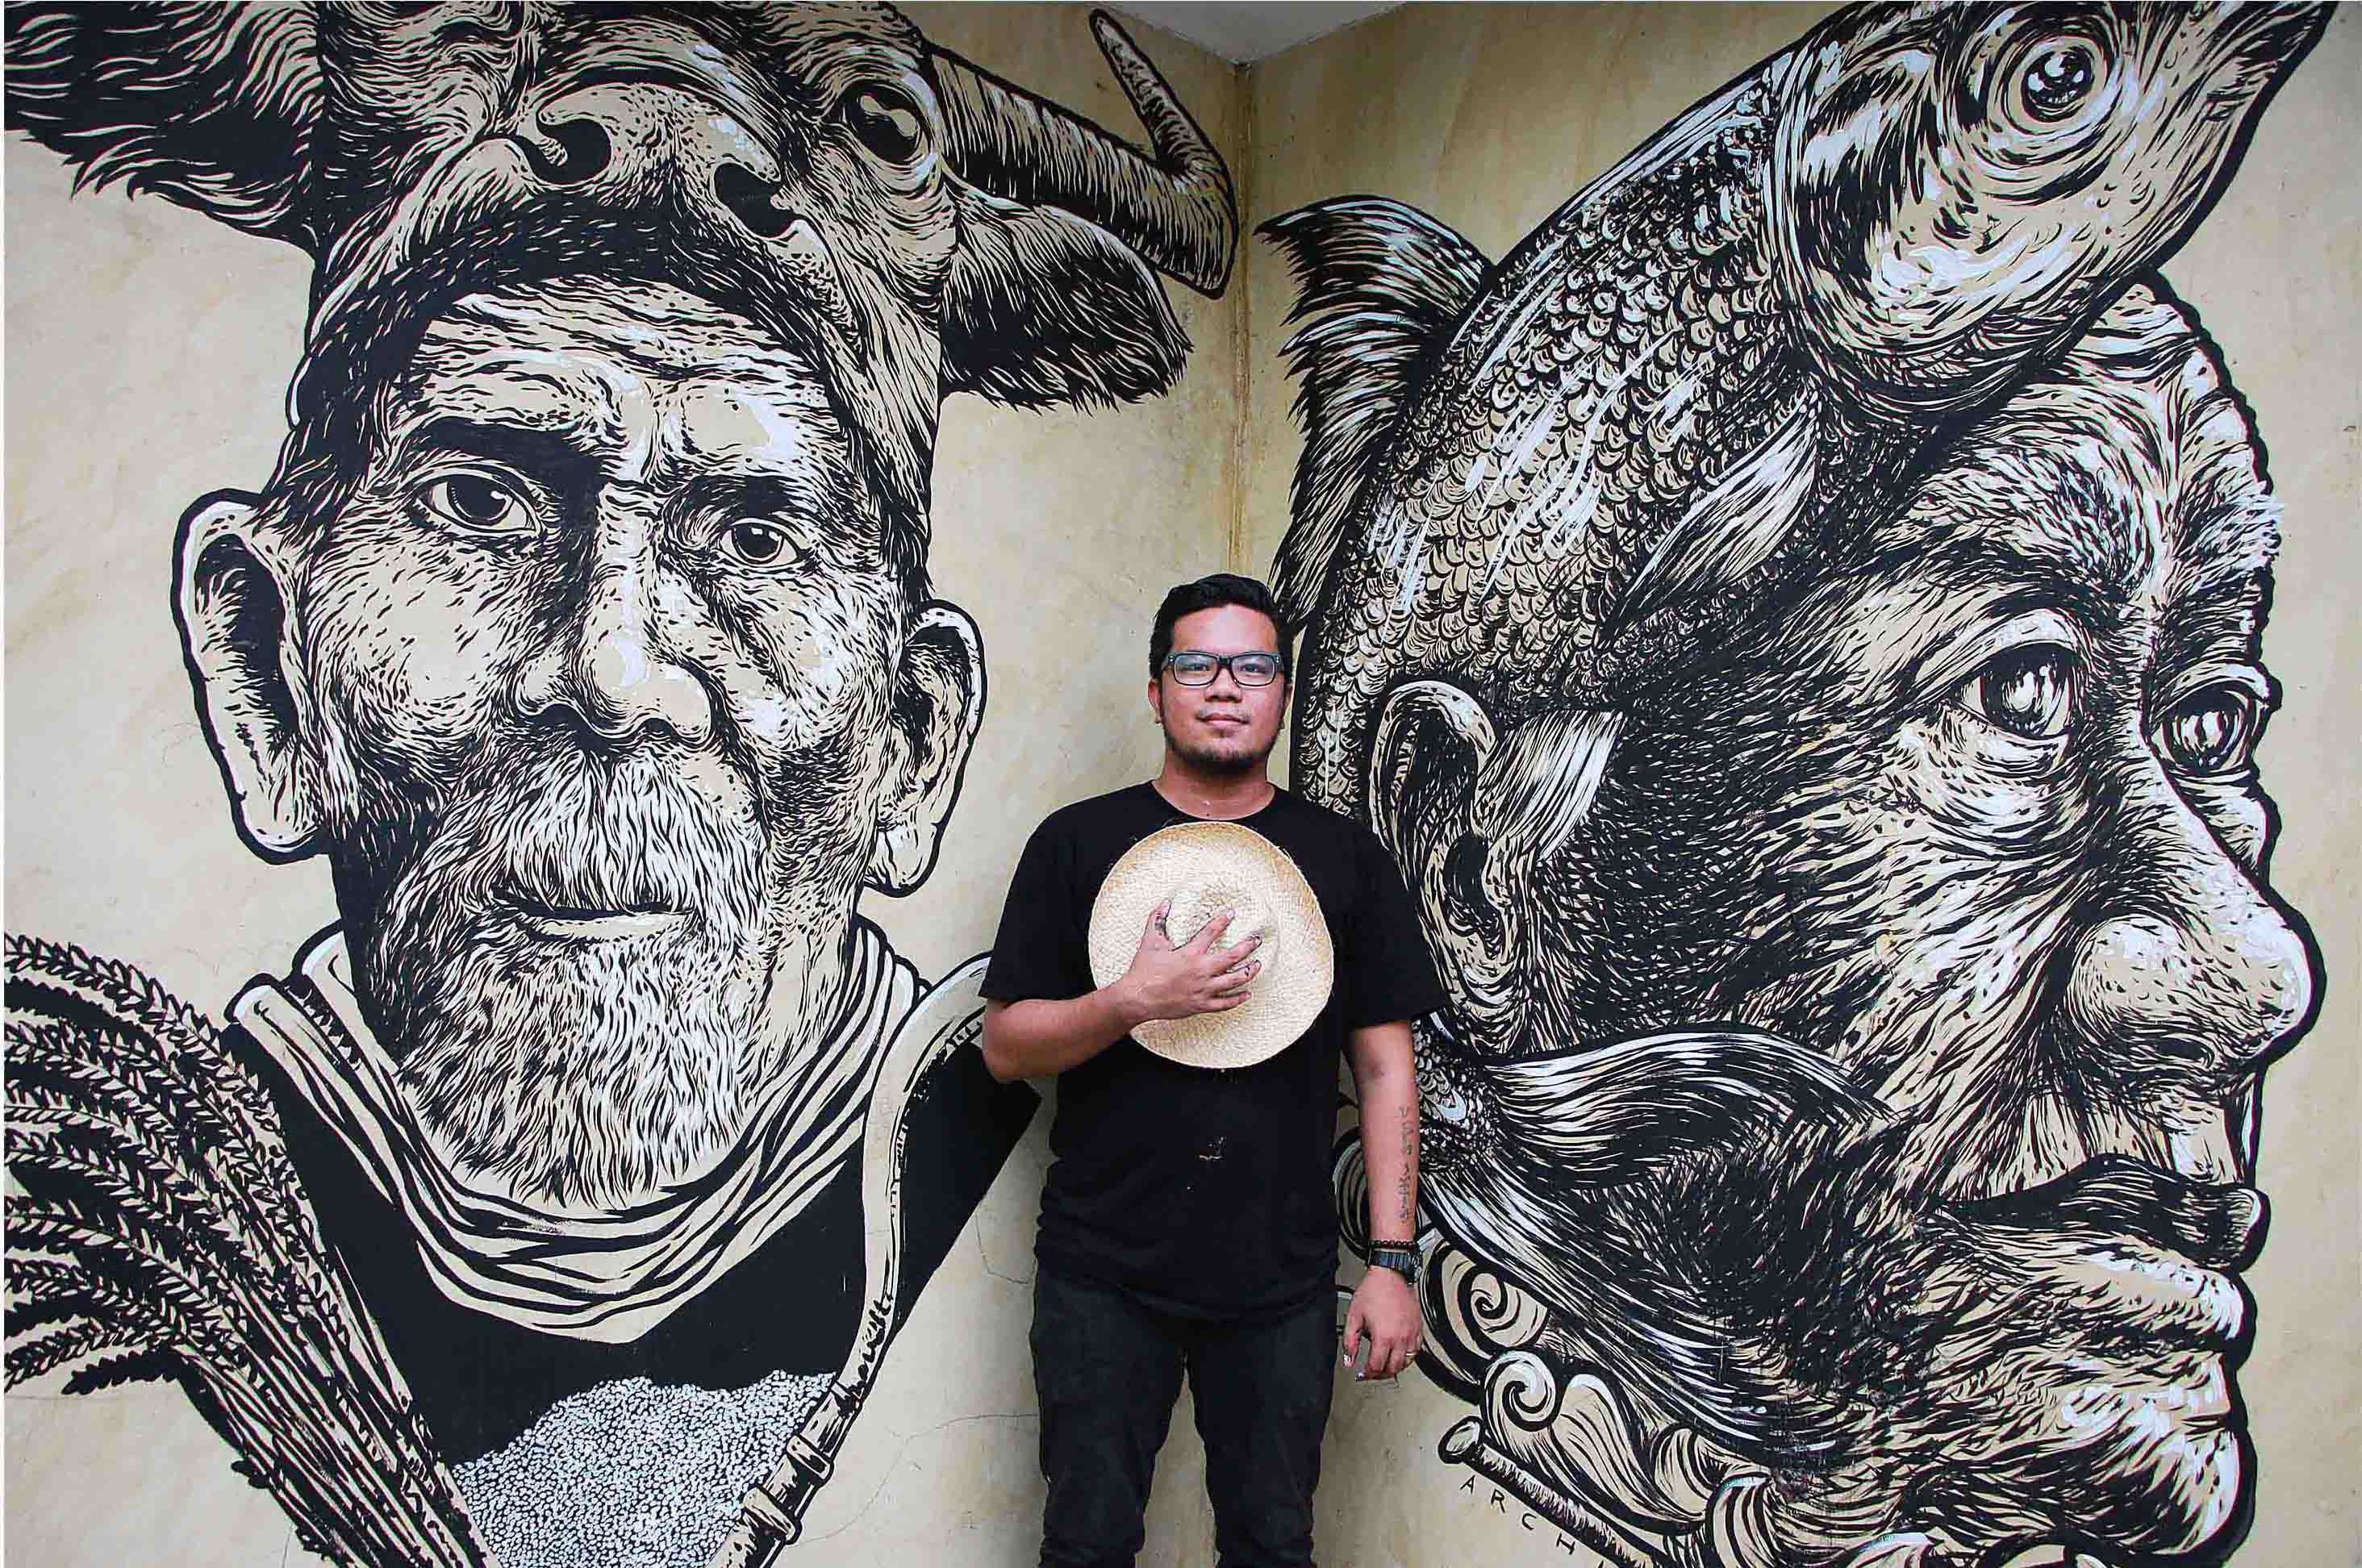 Archie Oclos Social Awareness Through Street Art And The Beauty And